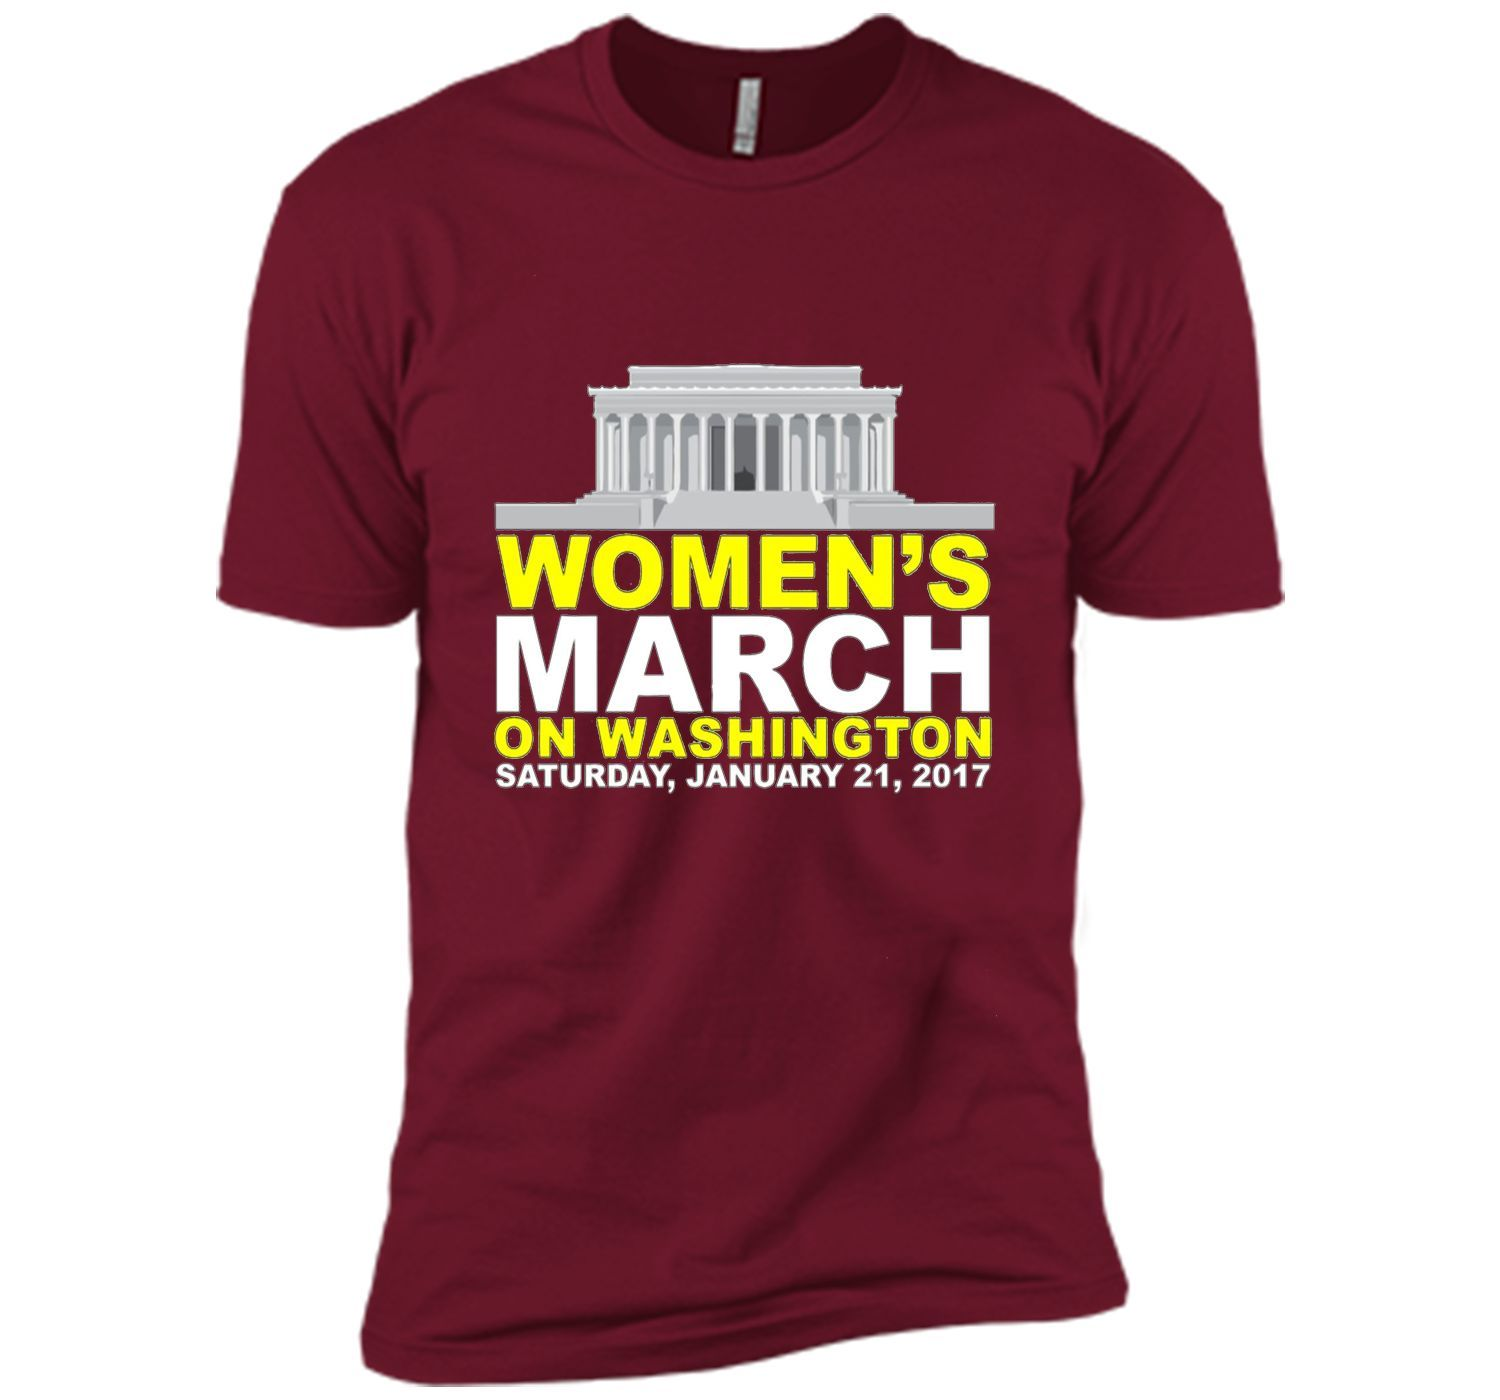 Women's March On Washington Shirt OUR BODIES OUR MINDS